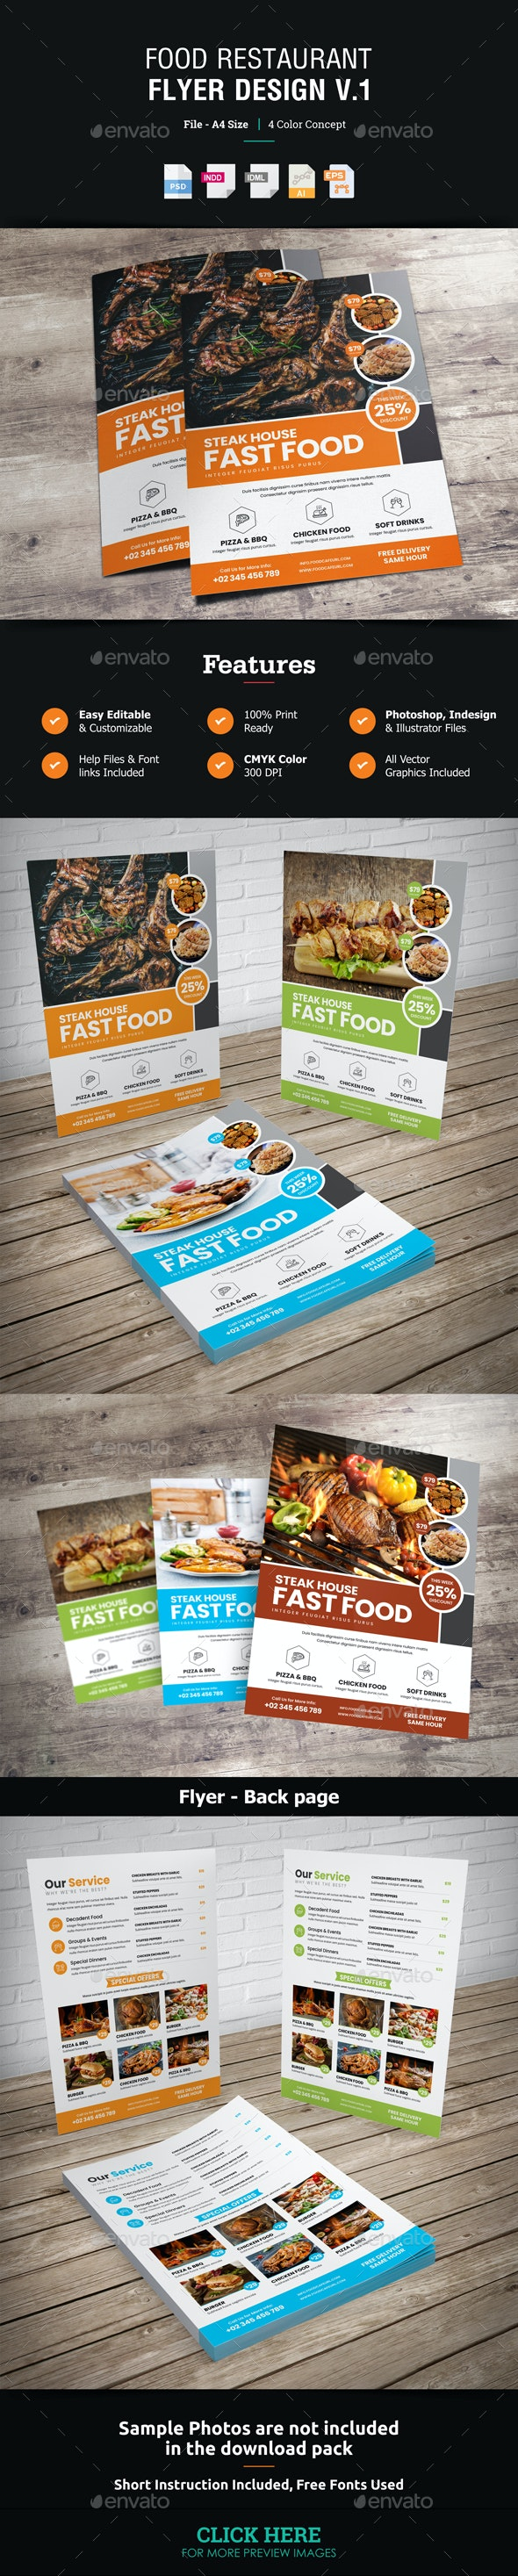 Food Restaurant Flyer Design v1 - Restaurant Flyers